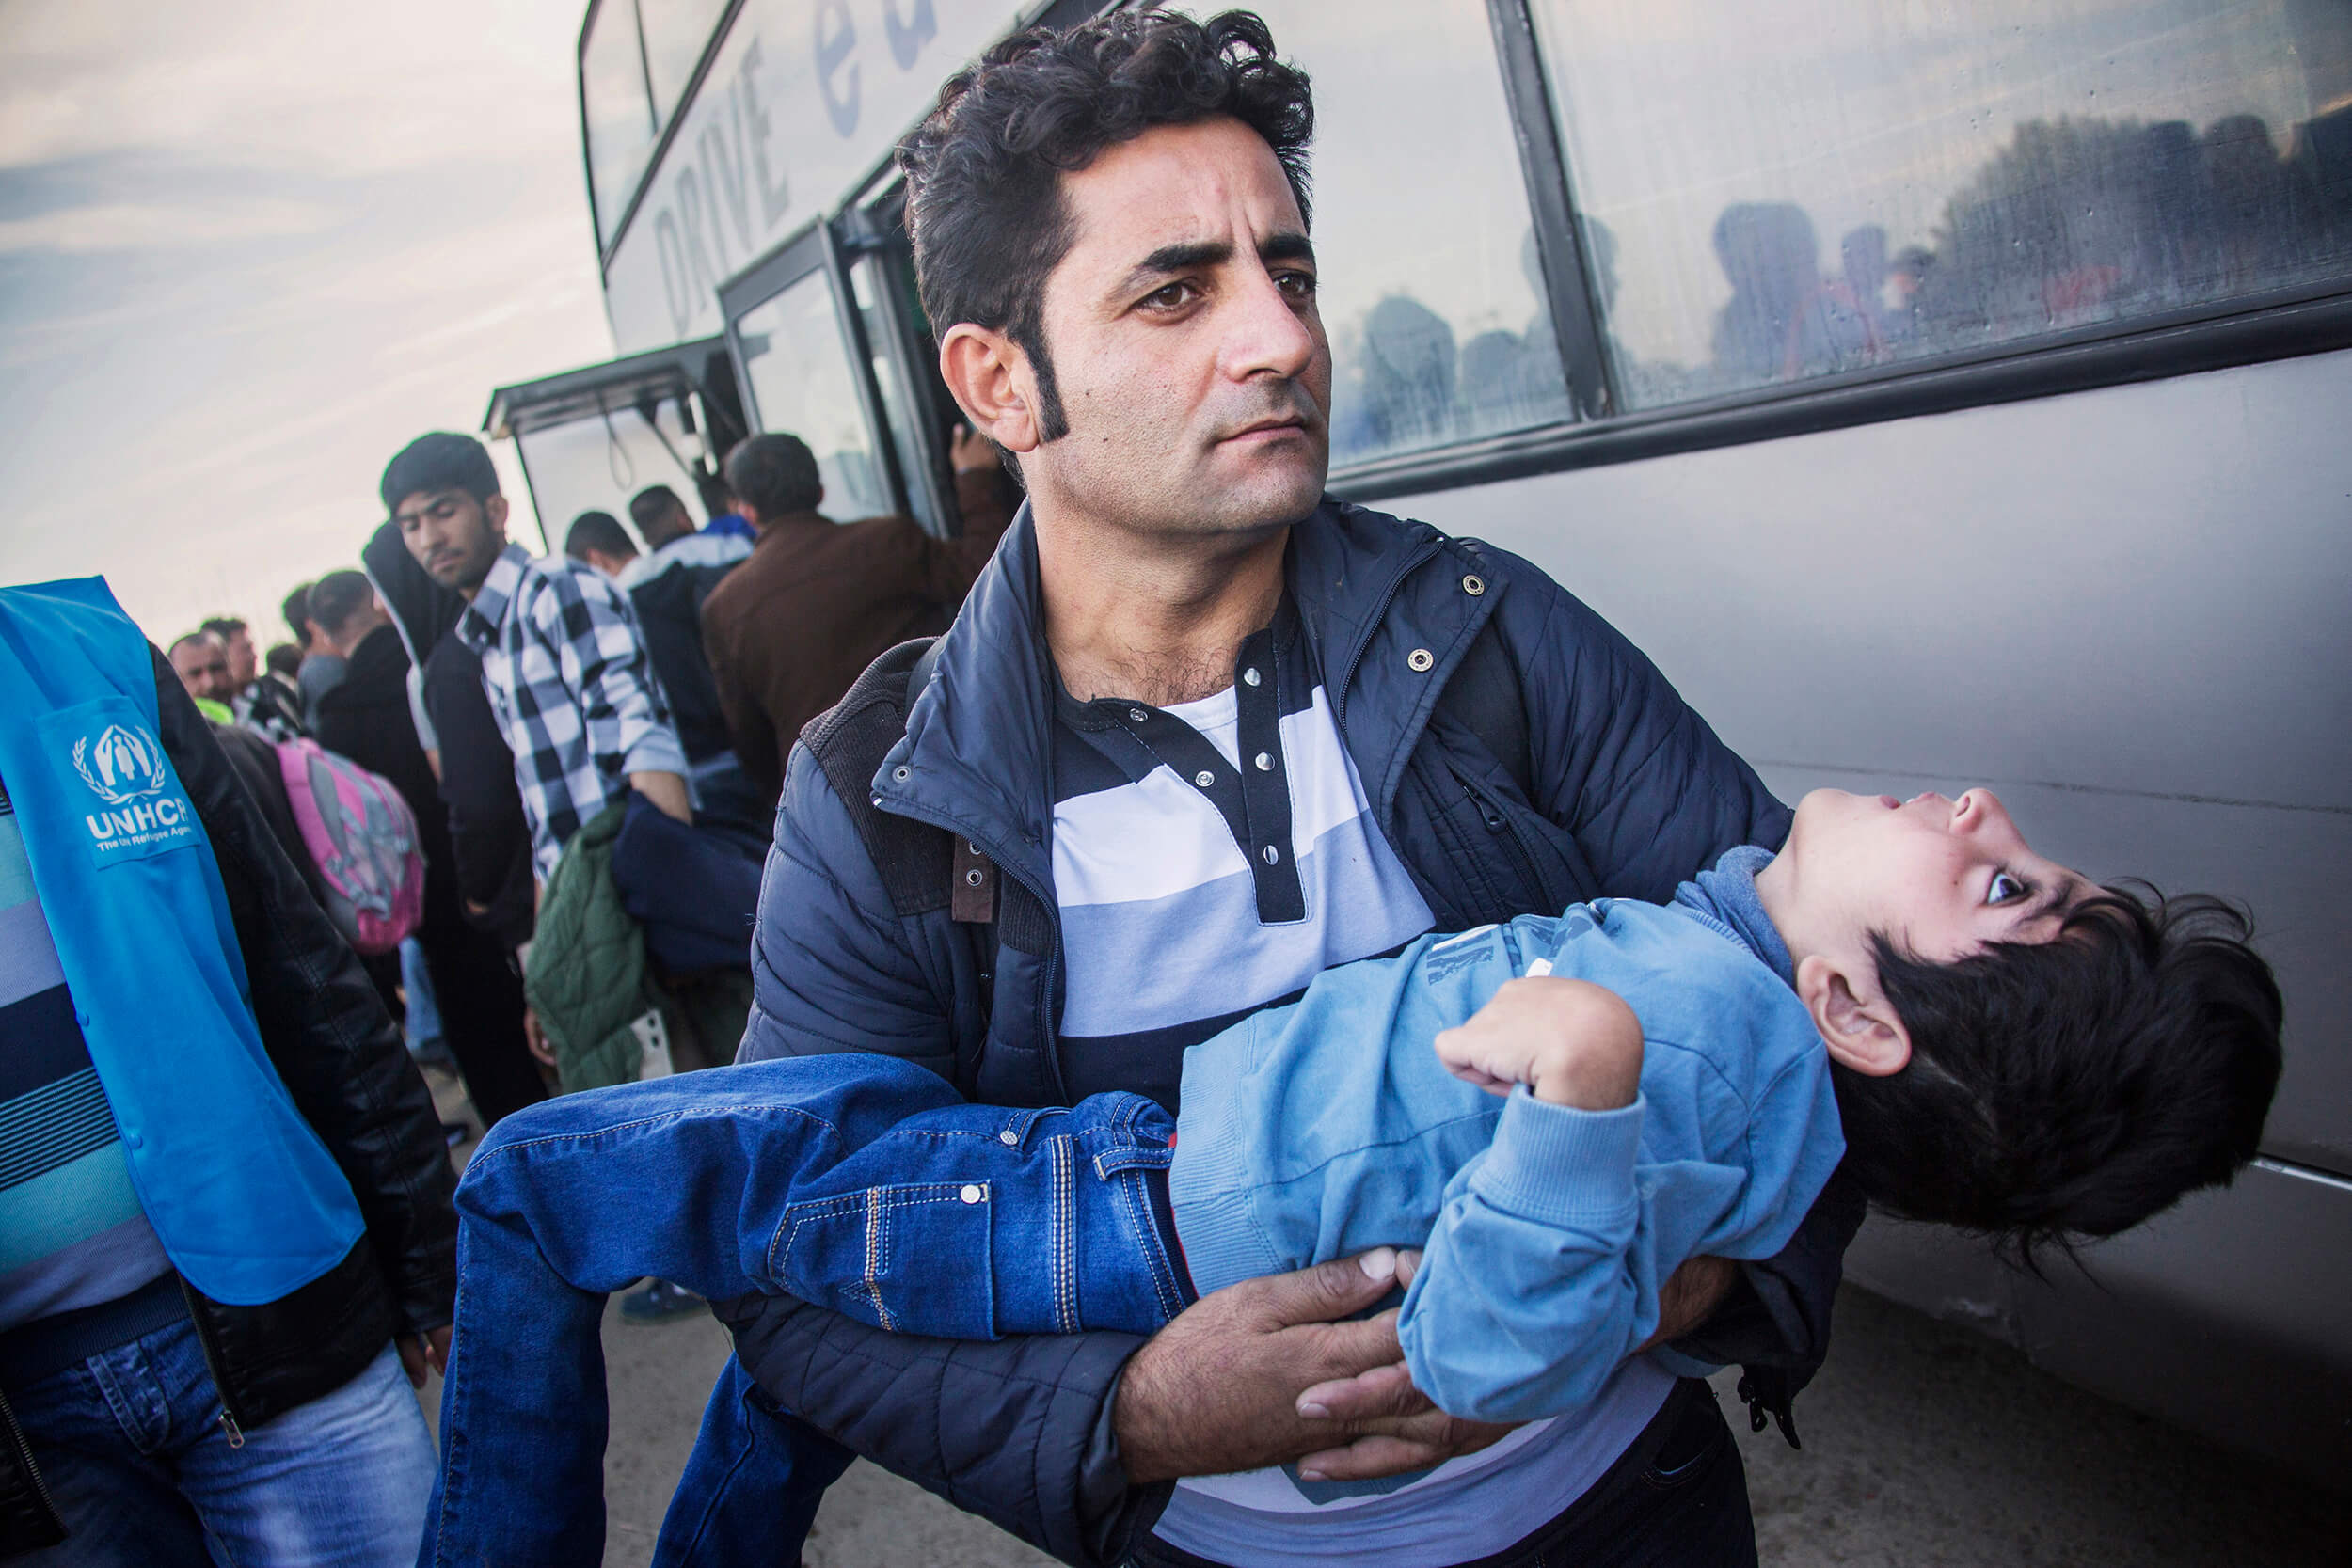 Serbia. October 2015. Refugees arriving by bus to Serbia at the border with Croatia. In the beginning of the crisis mostly young men fled. Now everyone. Old, young, sick, disabled, grandparents, whole families with pregnant women and babies.